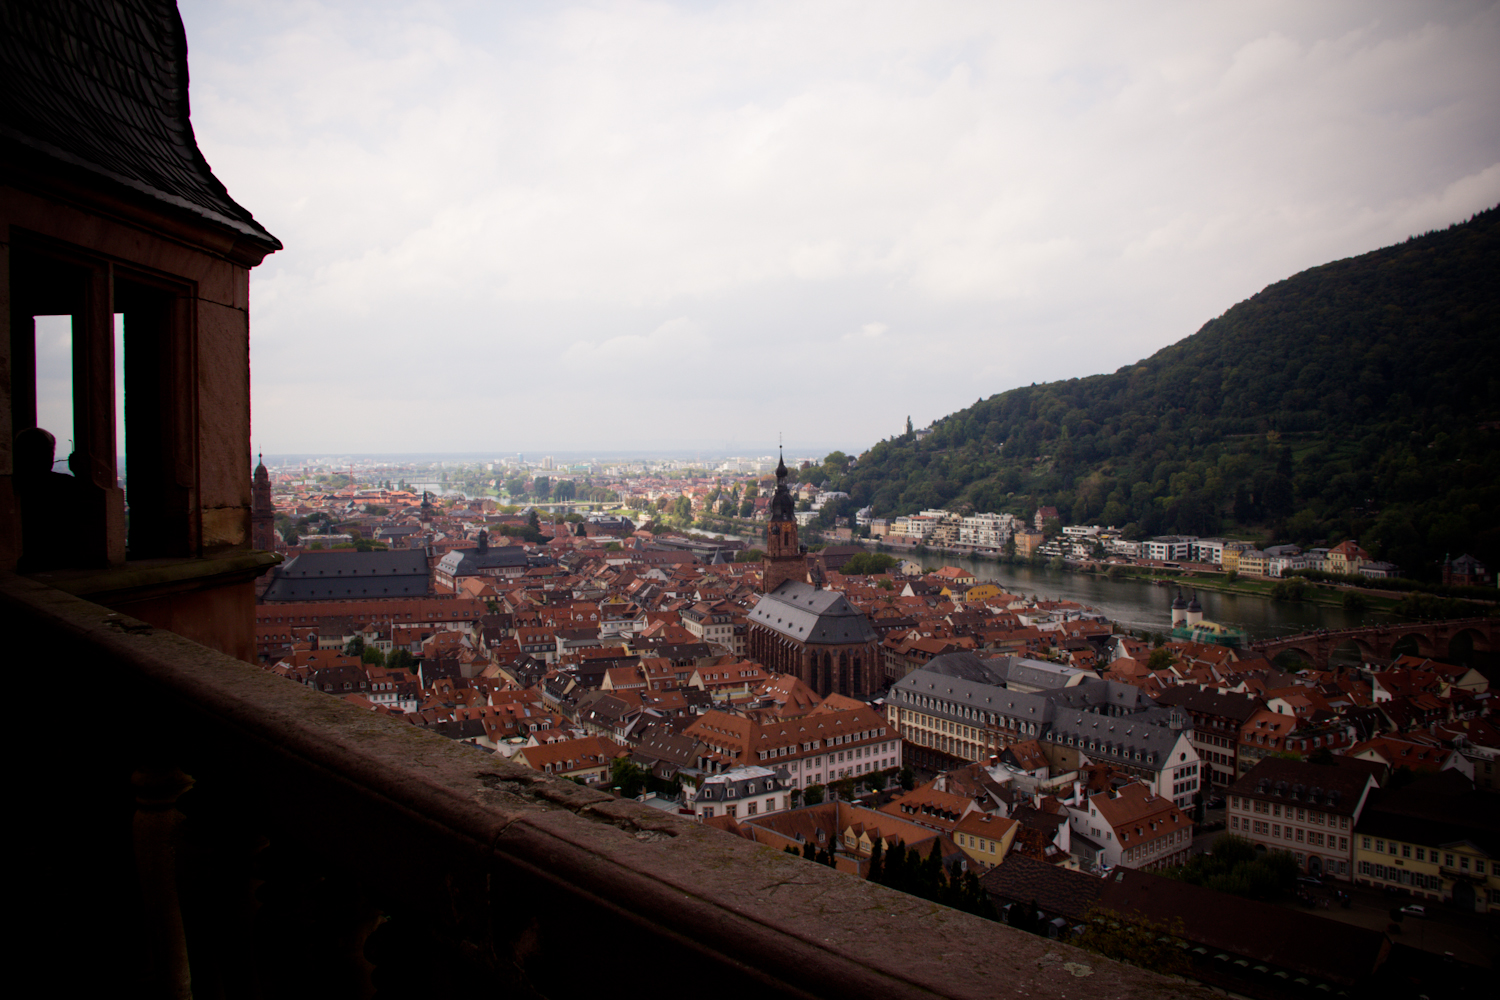 View from the castle overlooking the red rooftops